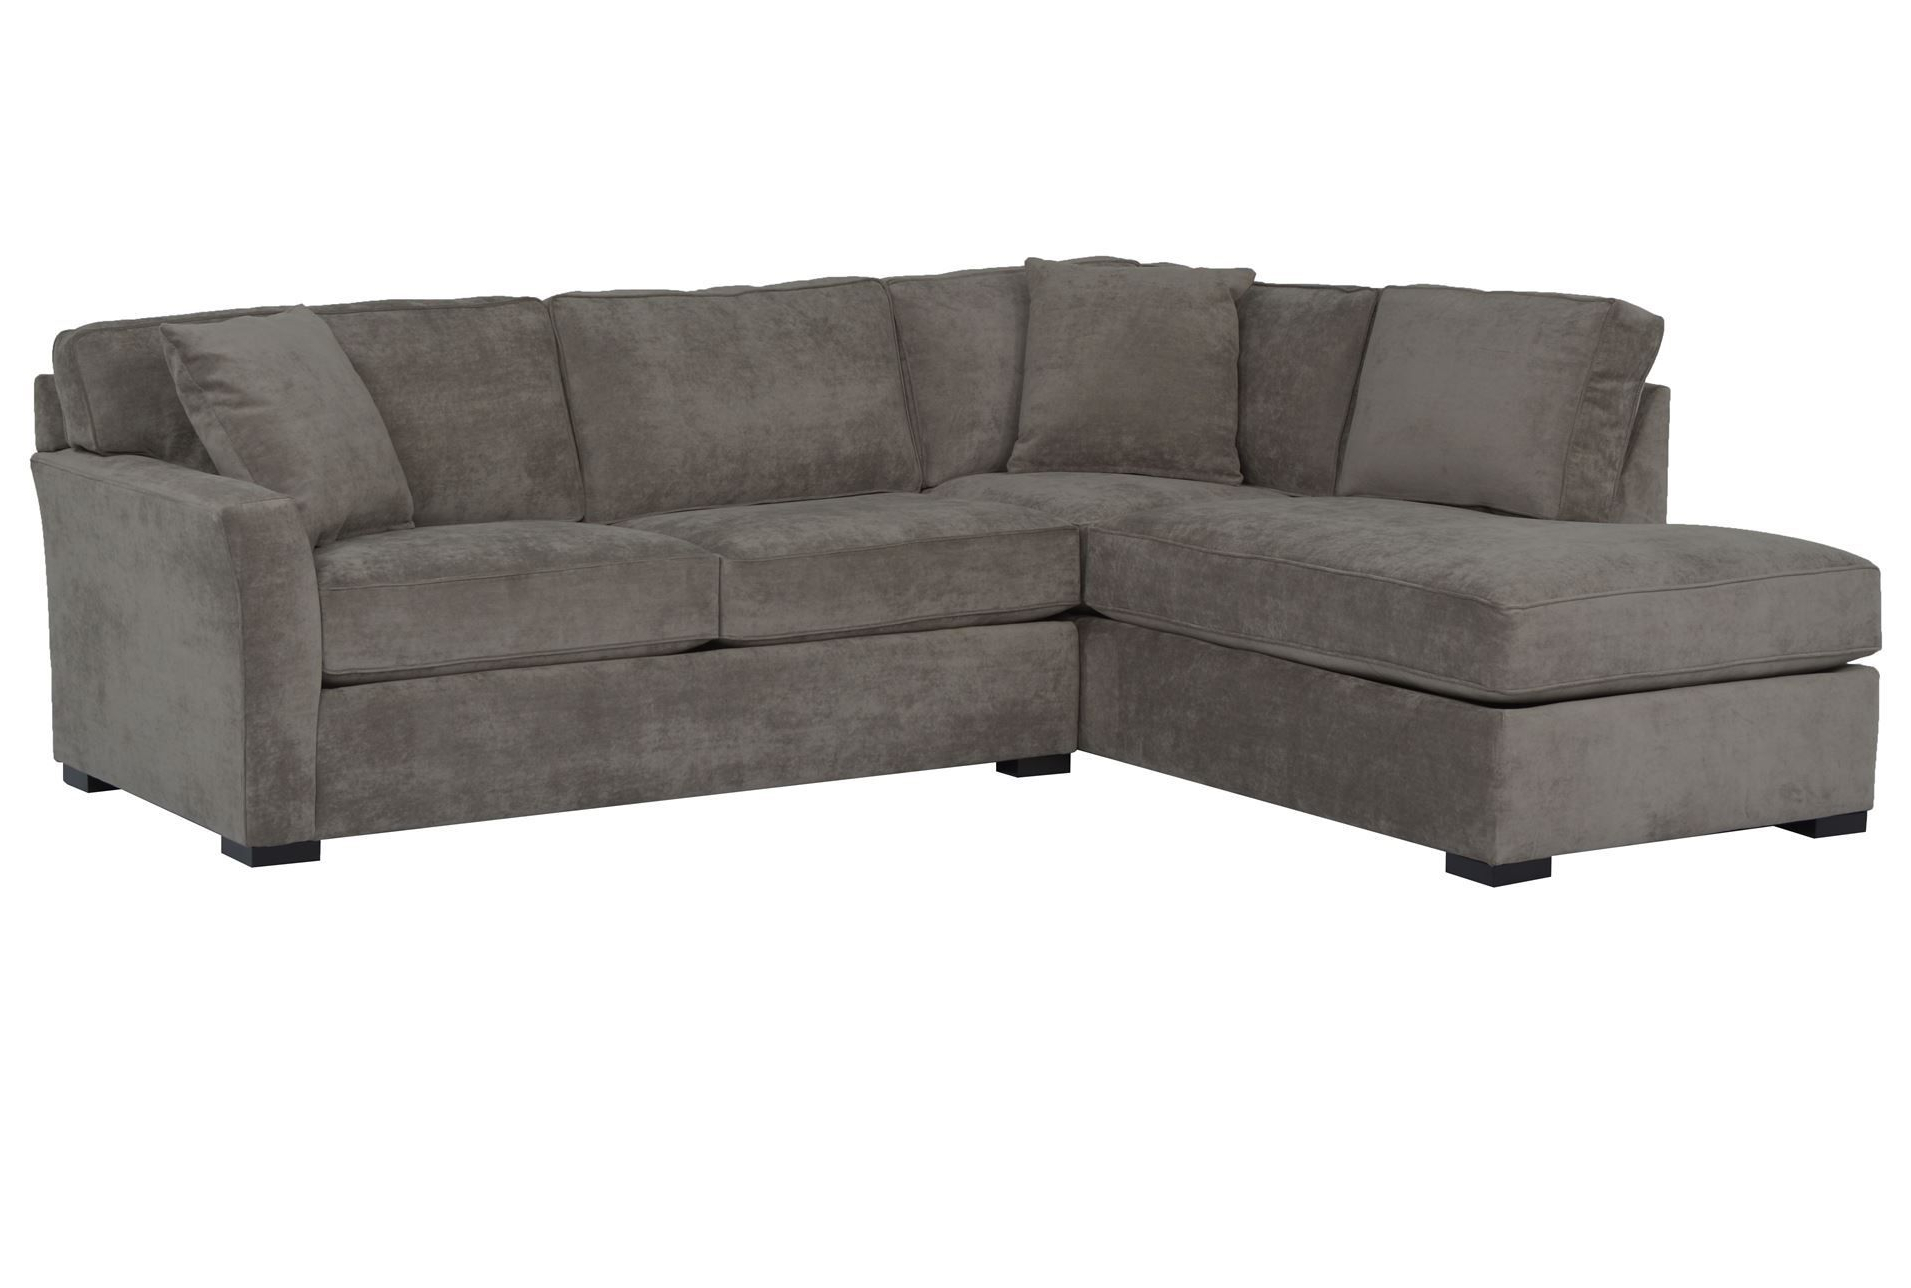 Aspen 2 Piece Sectionals With Raf Chaise Pertaining To Recent Aspen 2 Piece Sleeper Sectional W/laf Chaise (View 7 of 20)